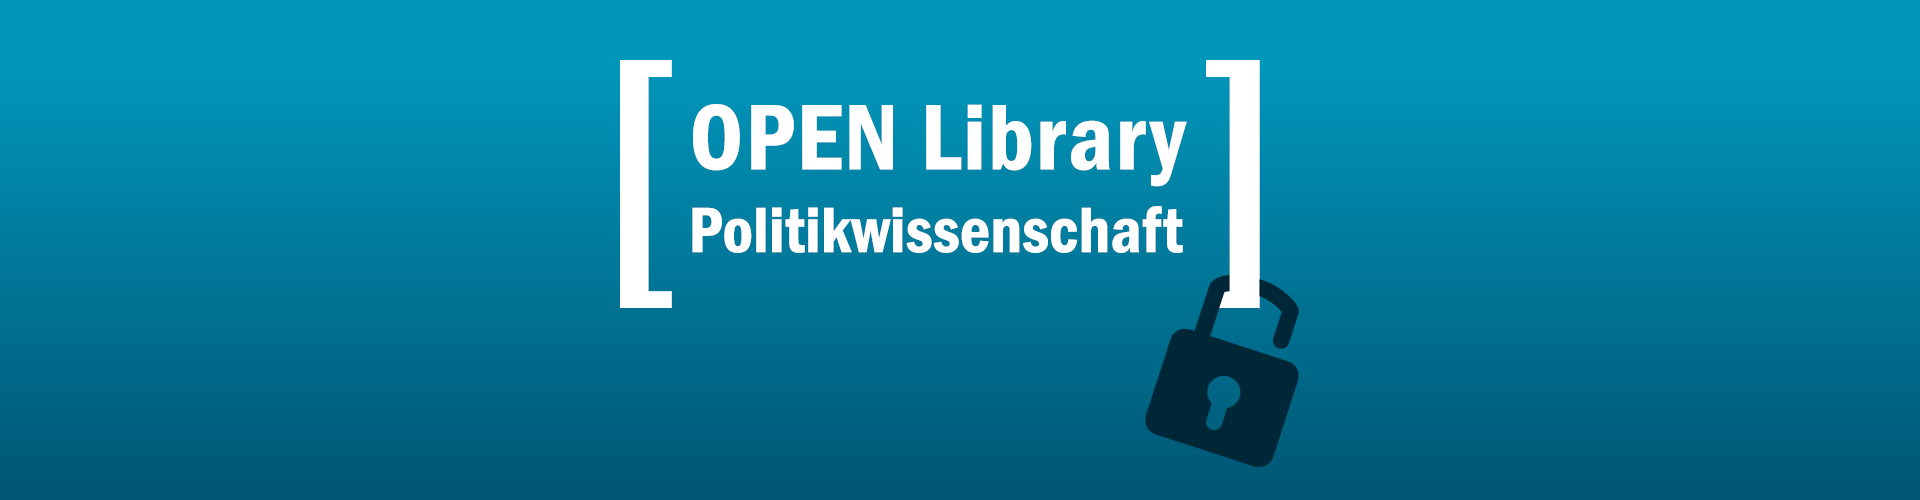 Open Library Politikwissenschaft